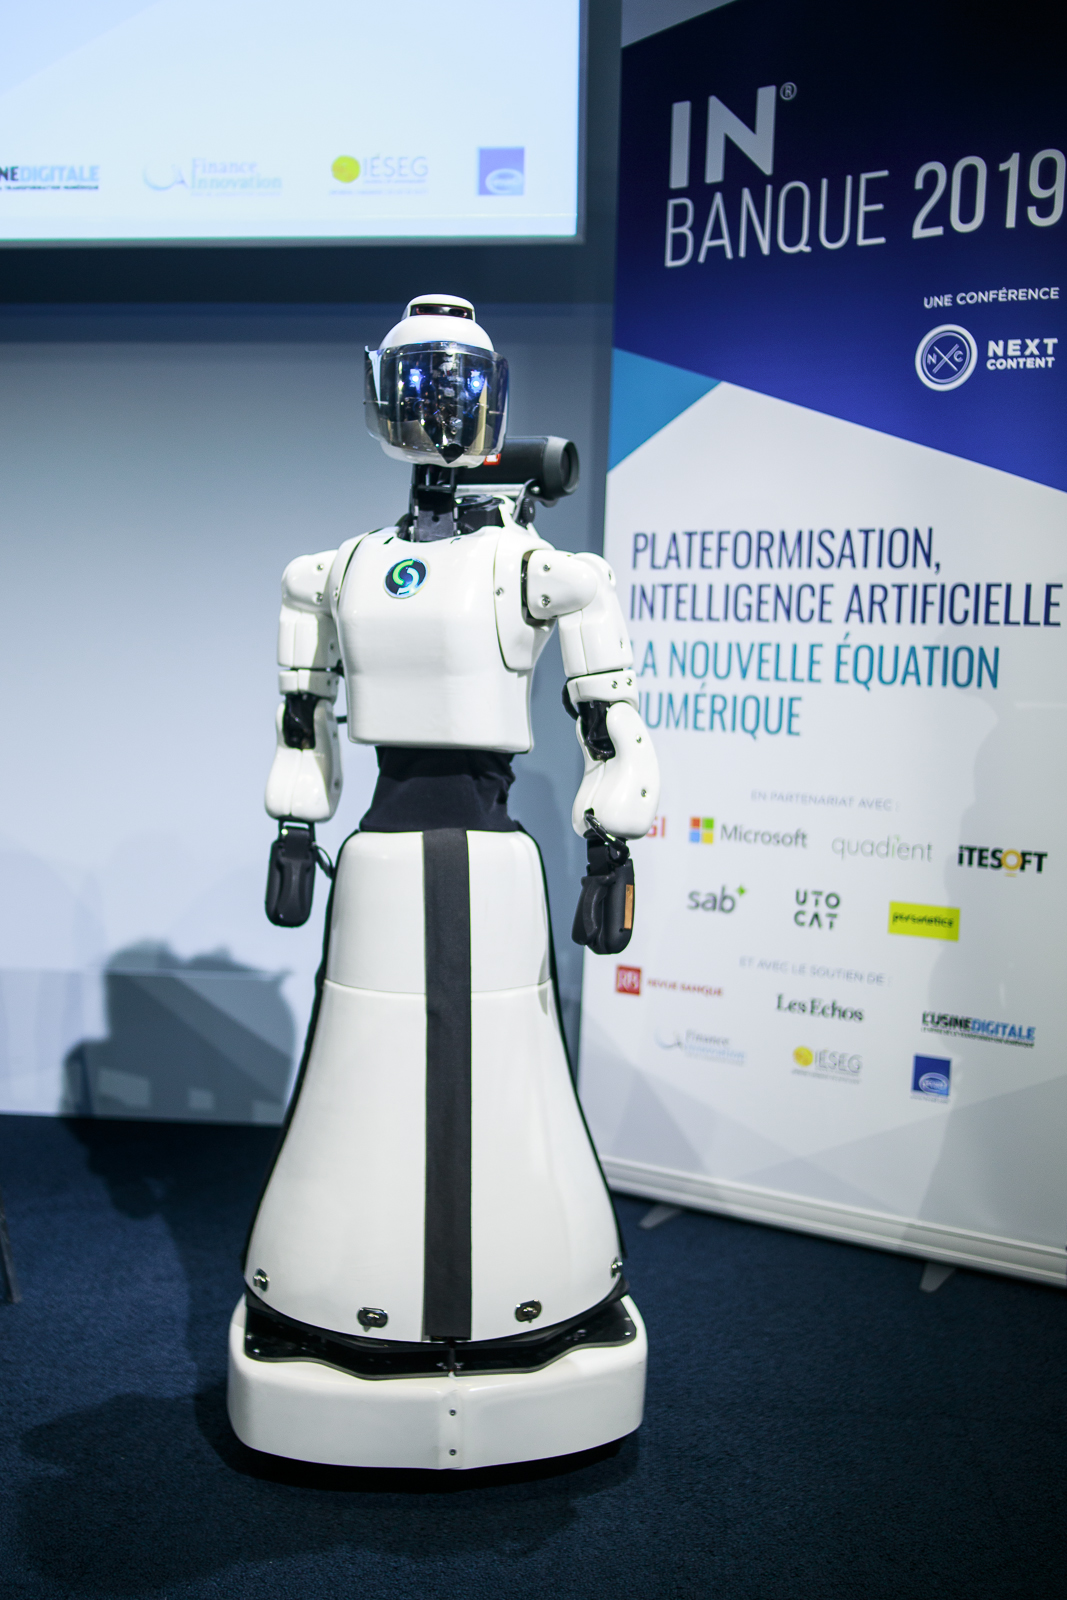 Le Robot Leenby - IN BANQUE 2019 - Crédit photo : Guillermo Gomez